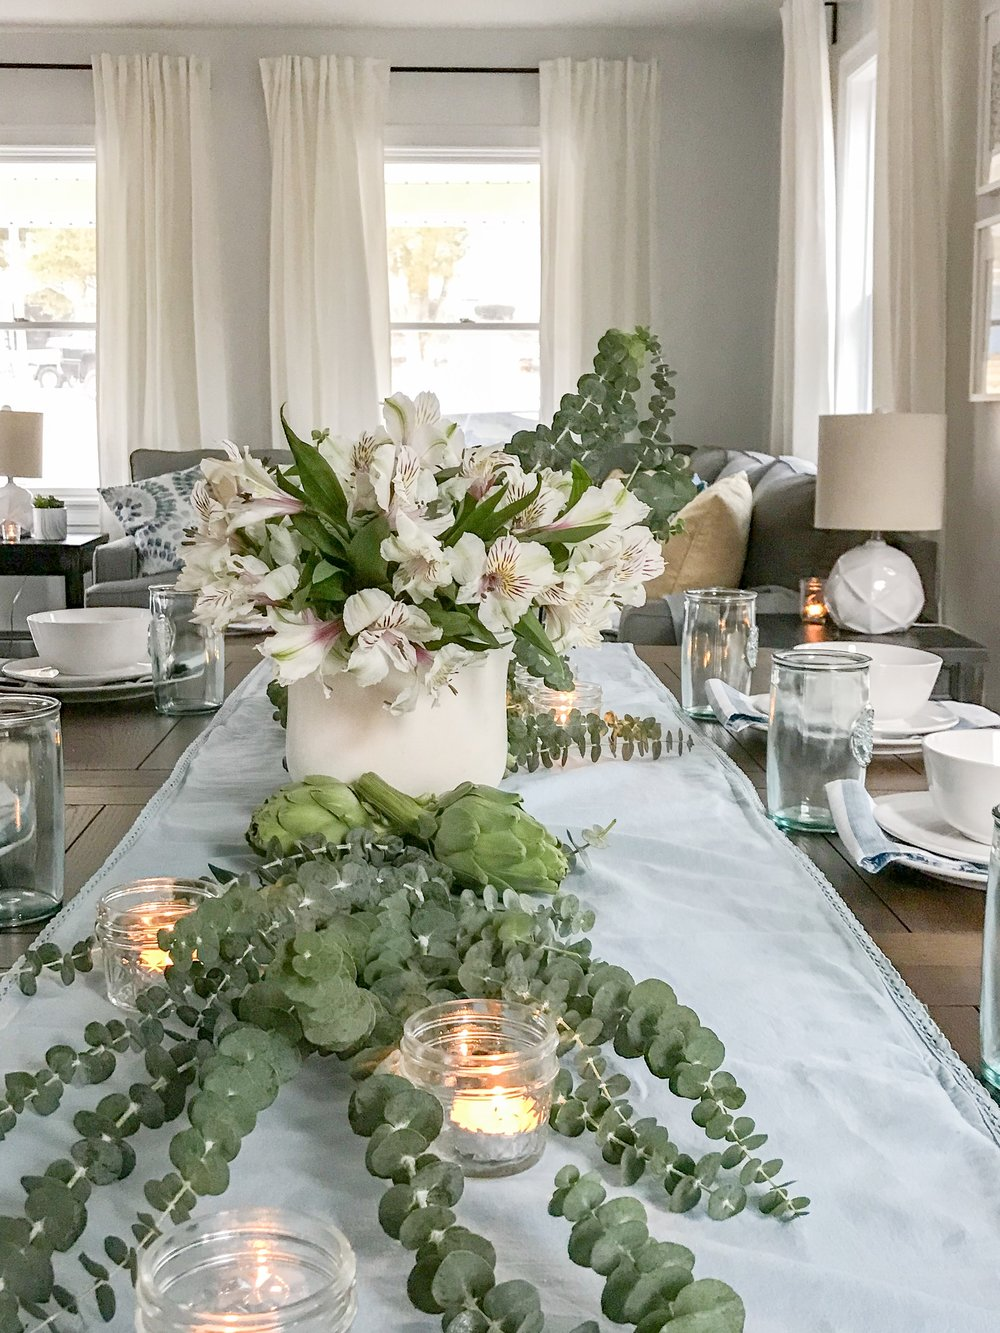 Bloggers Heart Habitat house dining room tablescape design ( The Rath Project)